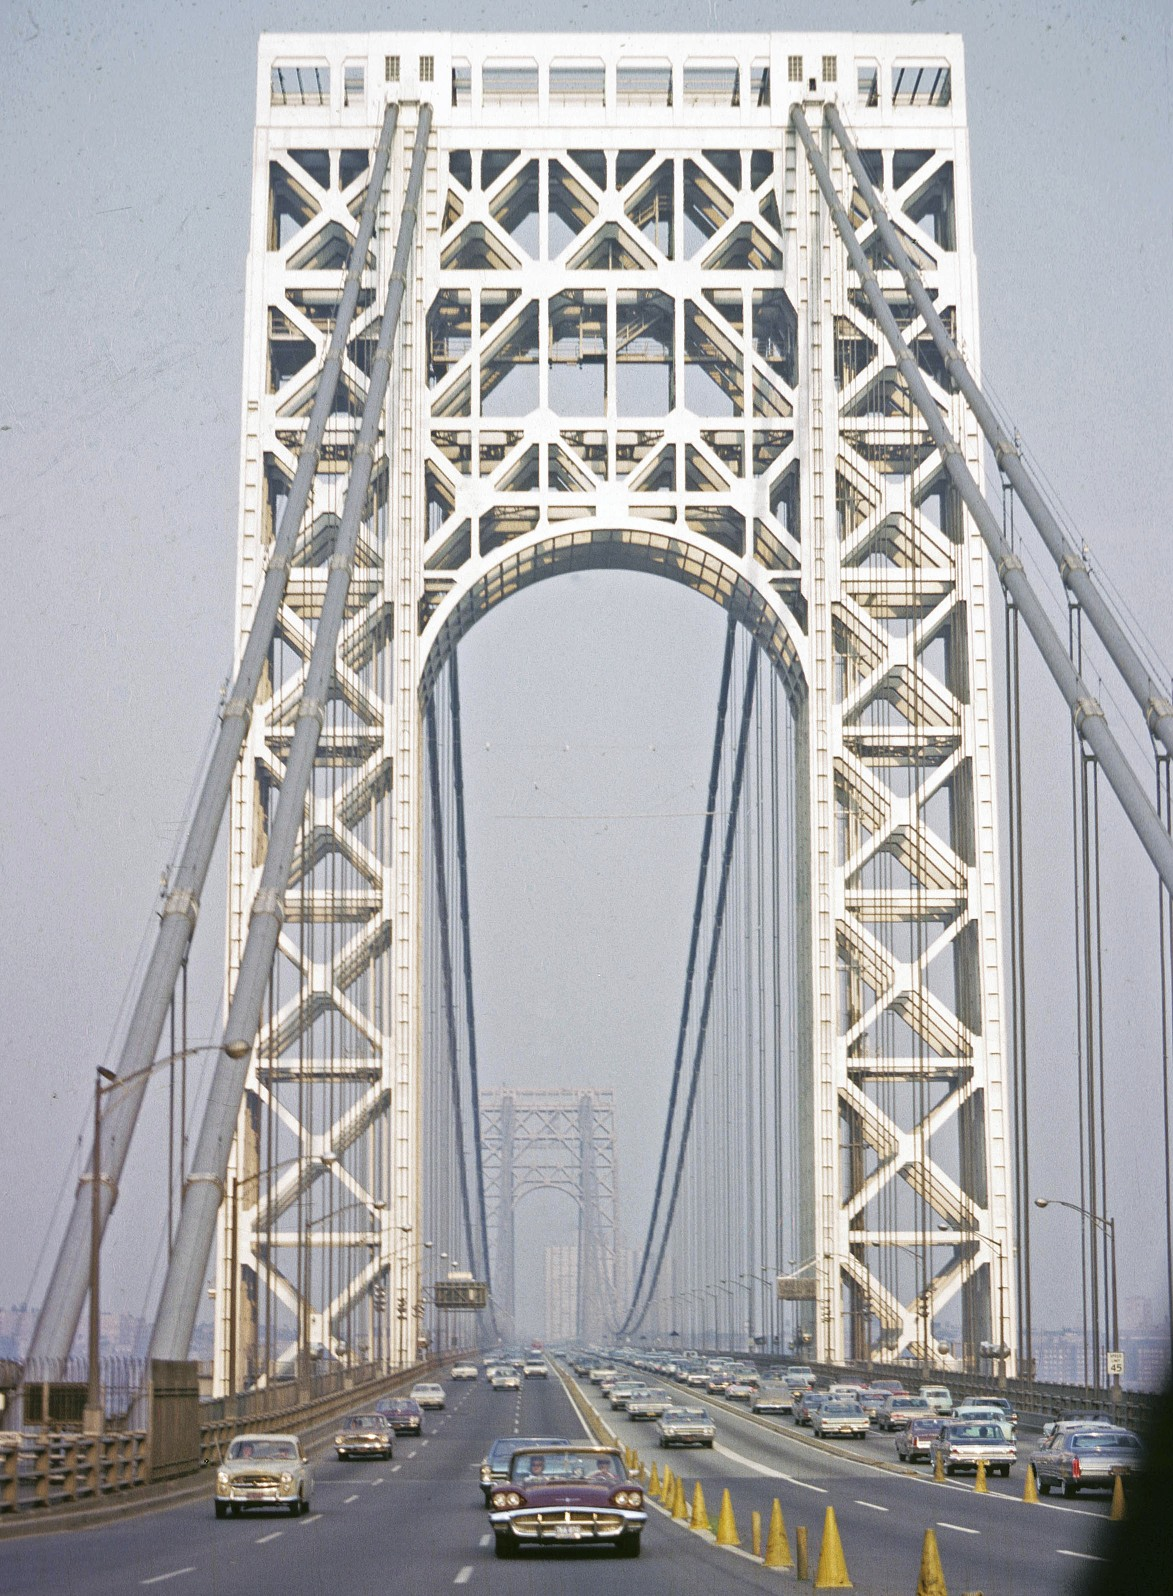 george washington bridge a brief photo essay mvschulze 06 024 8 7 66 cape cod ride